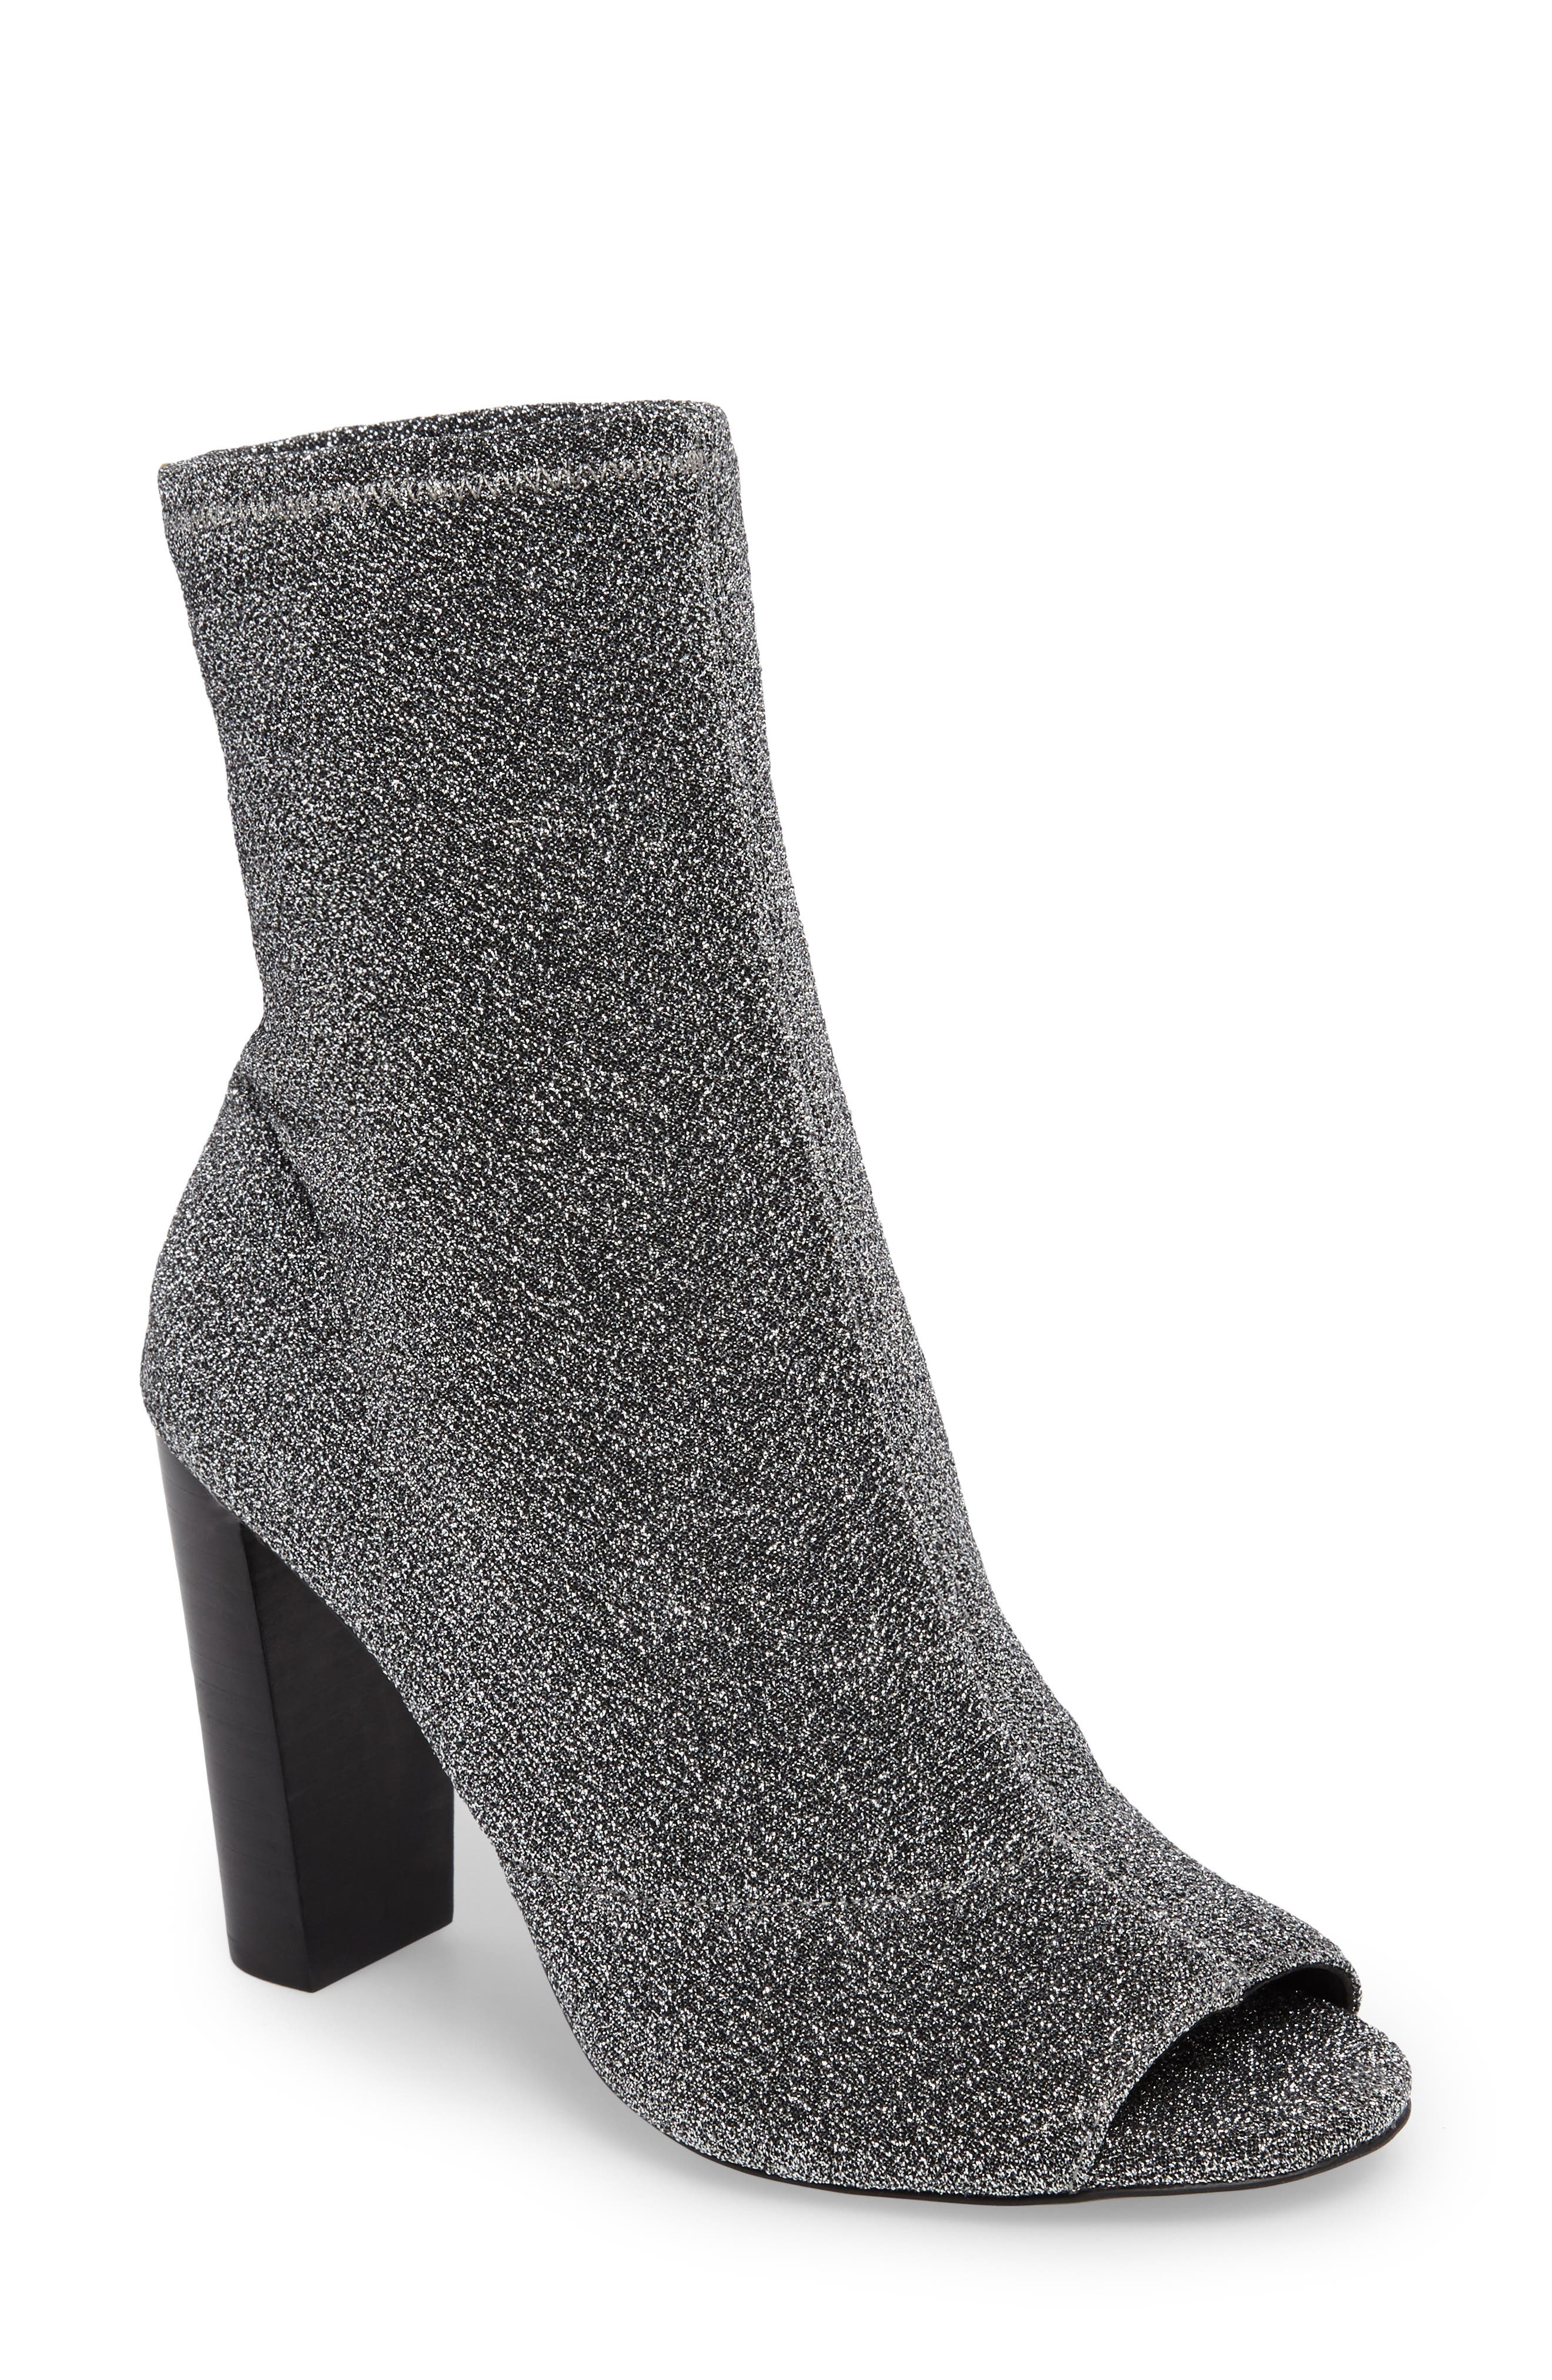 Elara Open-Toe Bootie,                         Main,                         color, Gunmetal